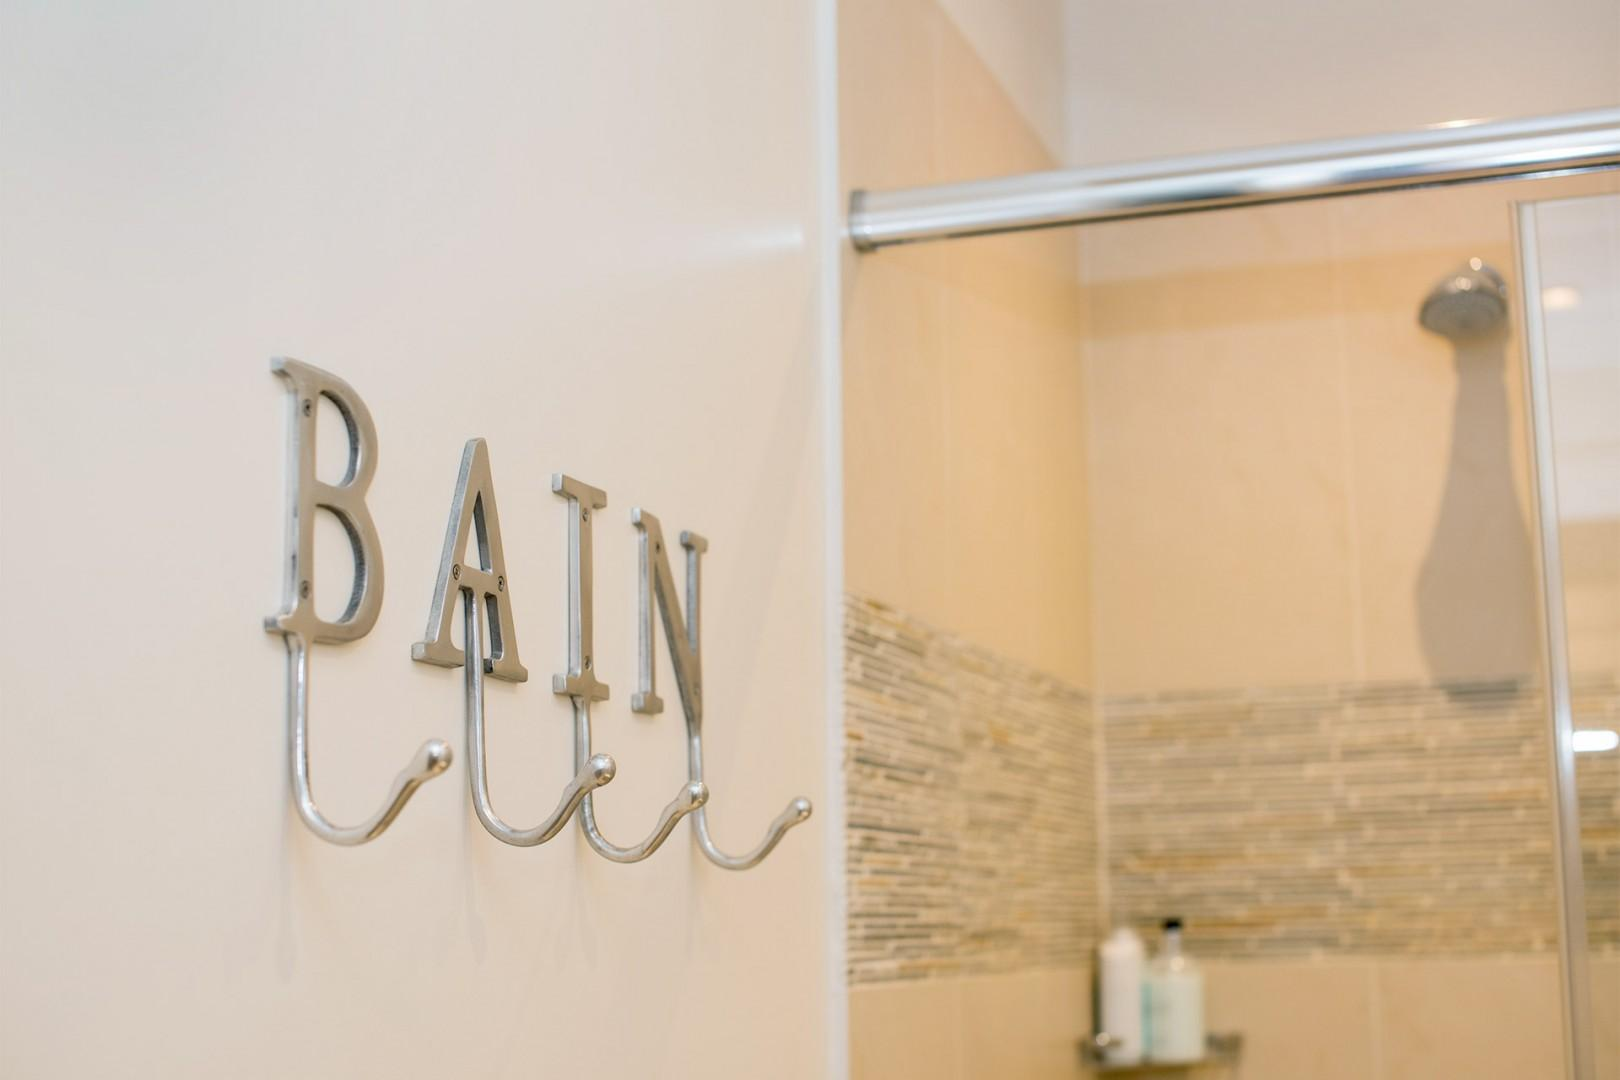 Stainless steel letters spell 'bathroom' in French!